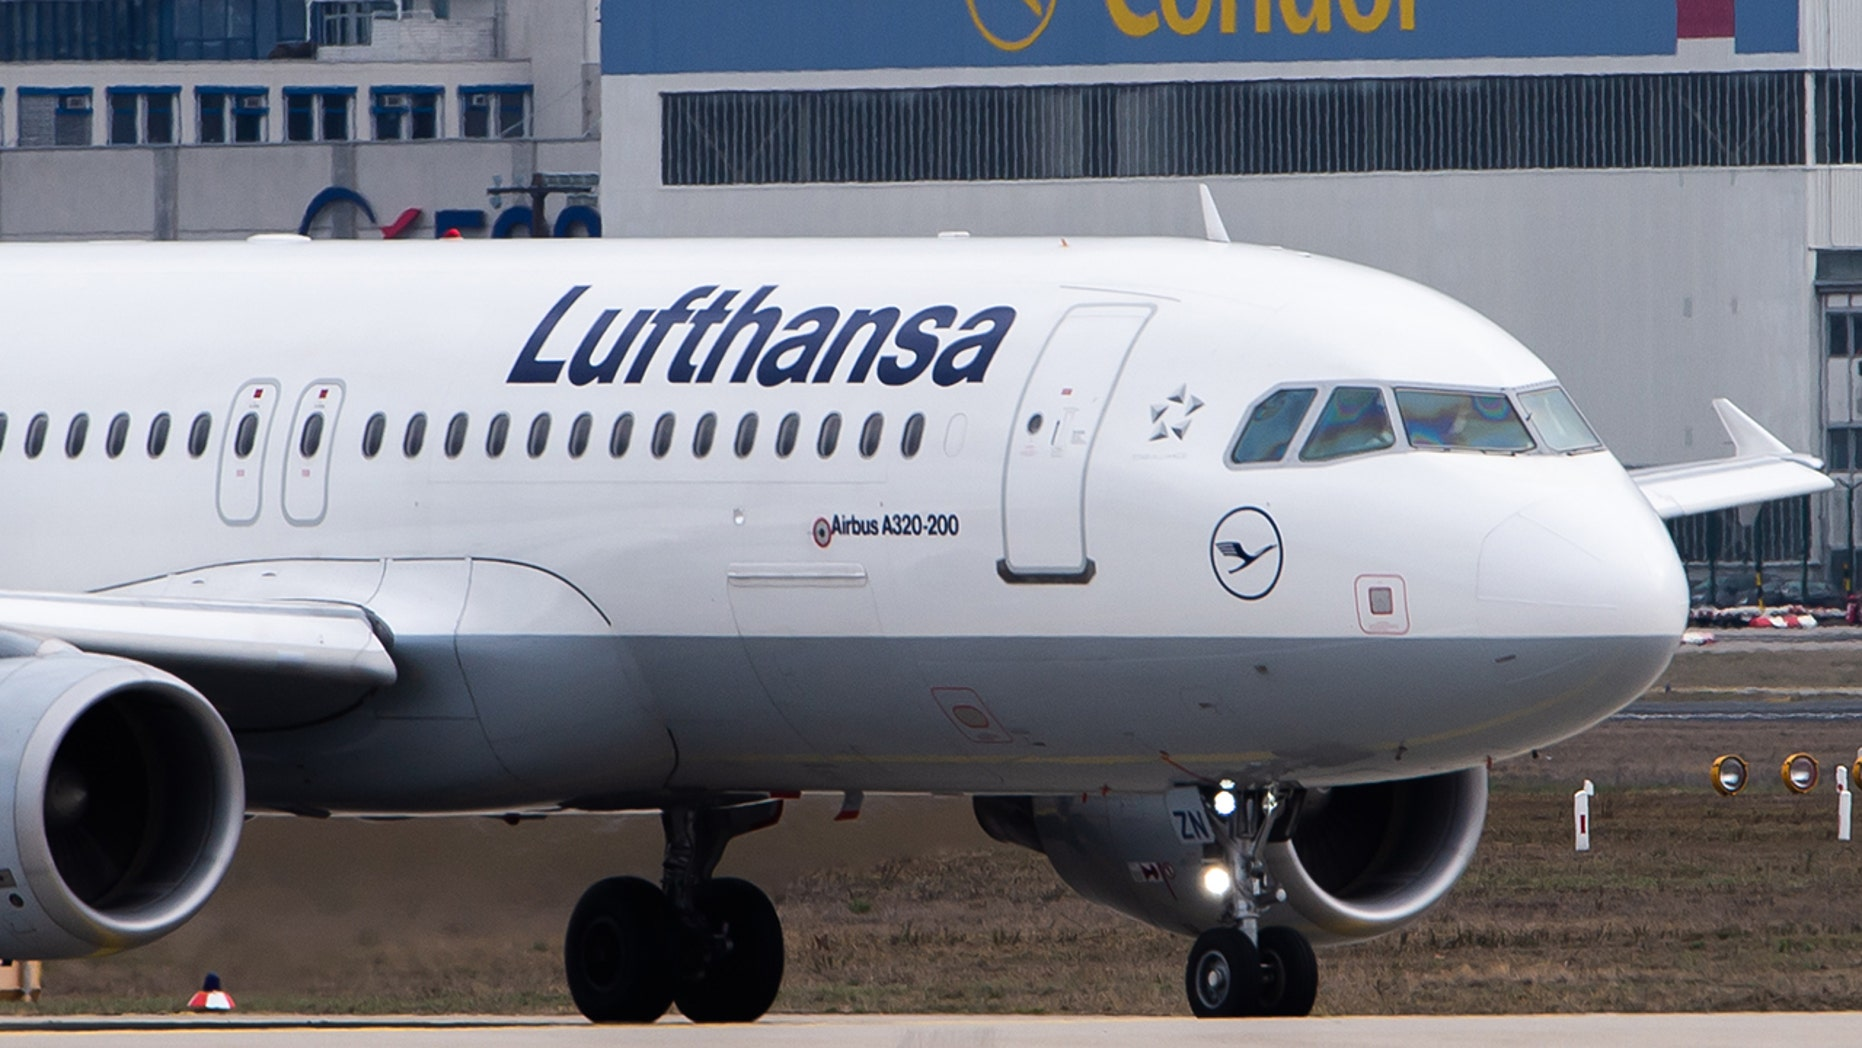 Lufthansa is suing passengers trying to collect more for already completed flights